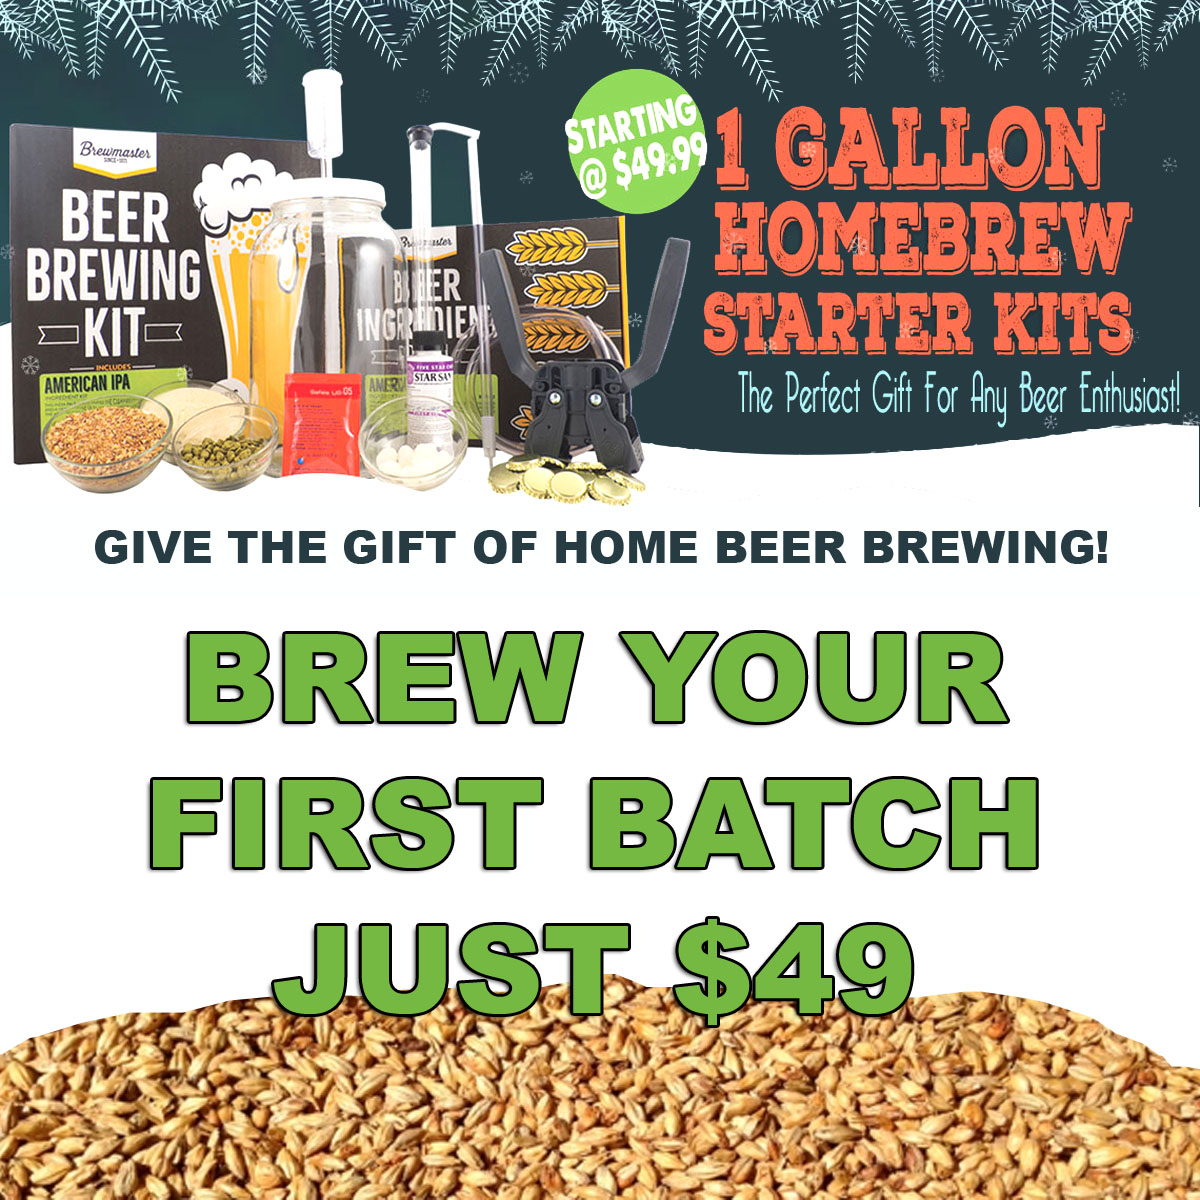 Home Brewer Promo Code for Home Beer Brewing Kit Just $49 Coupon Code